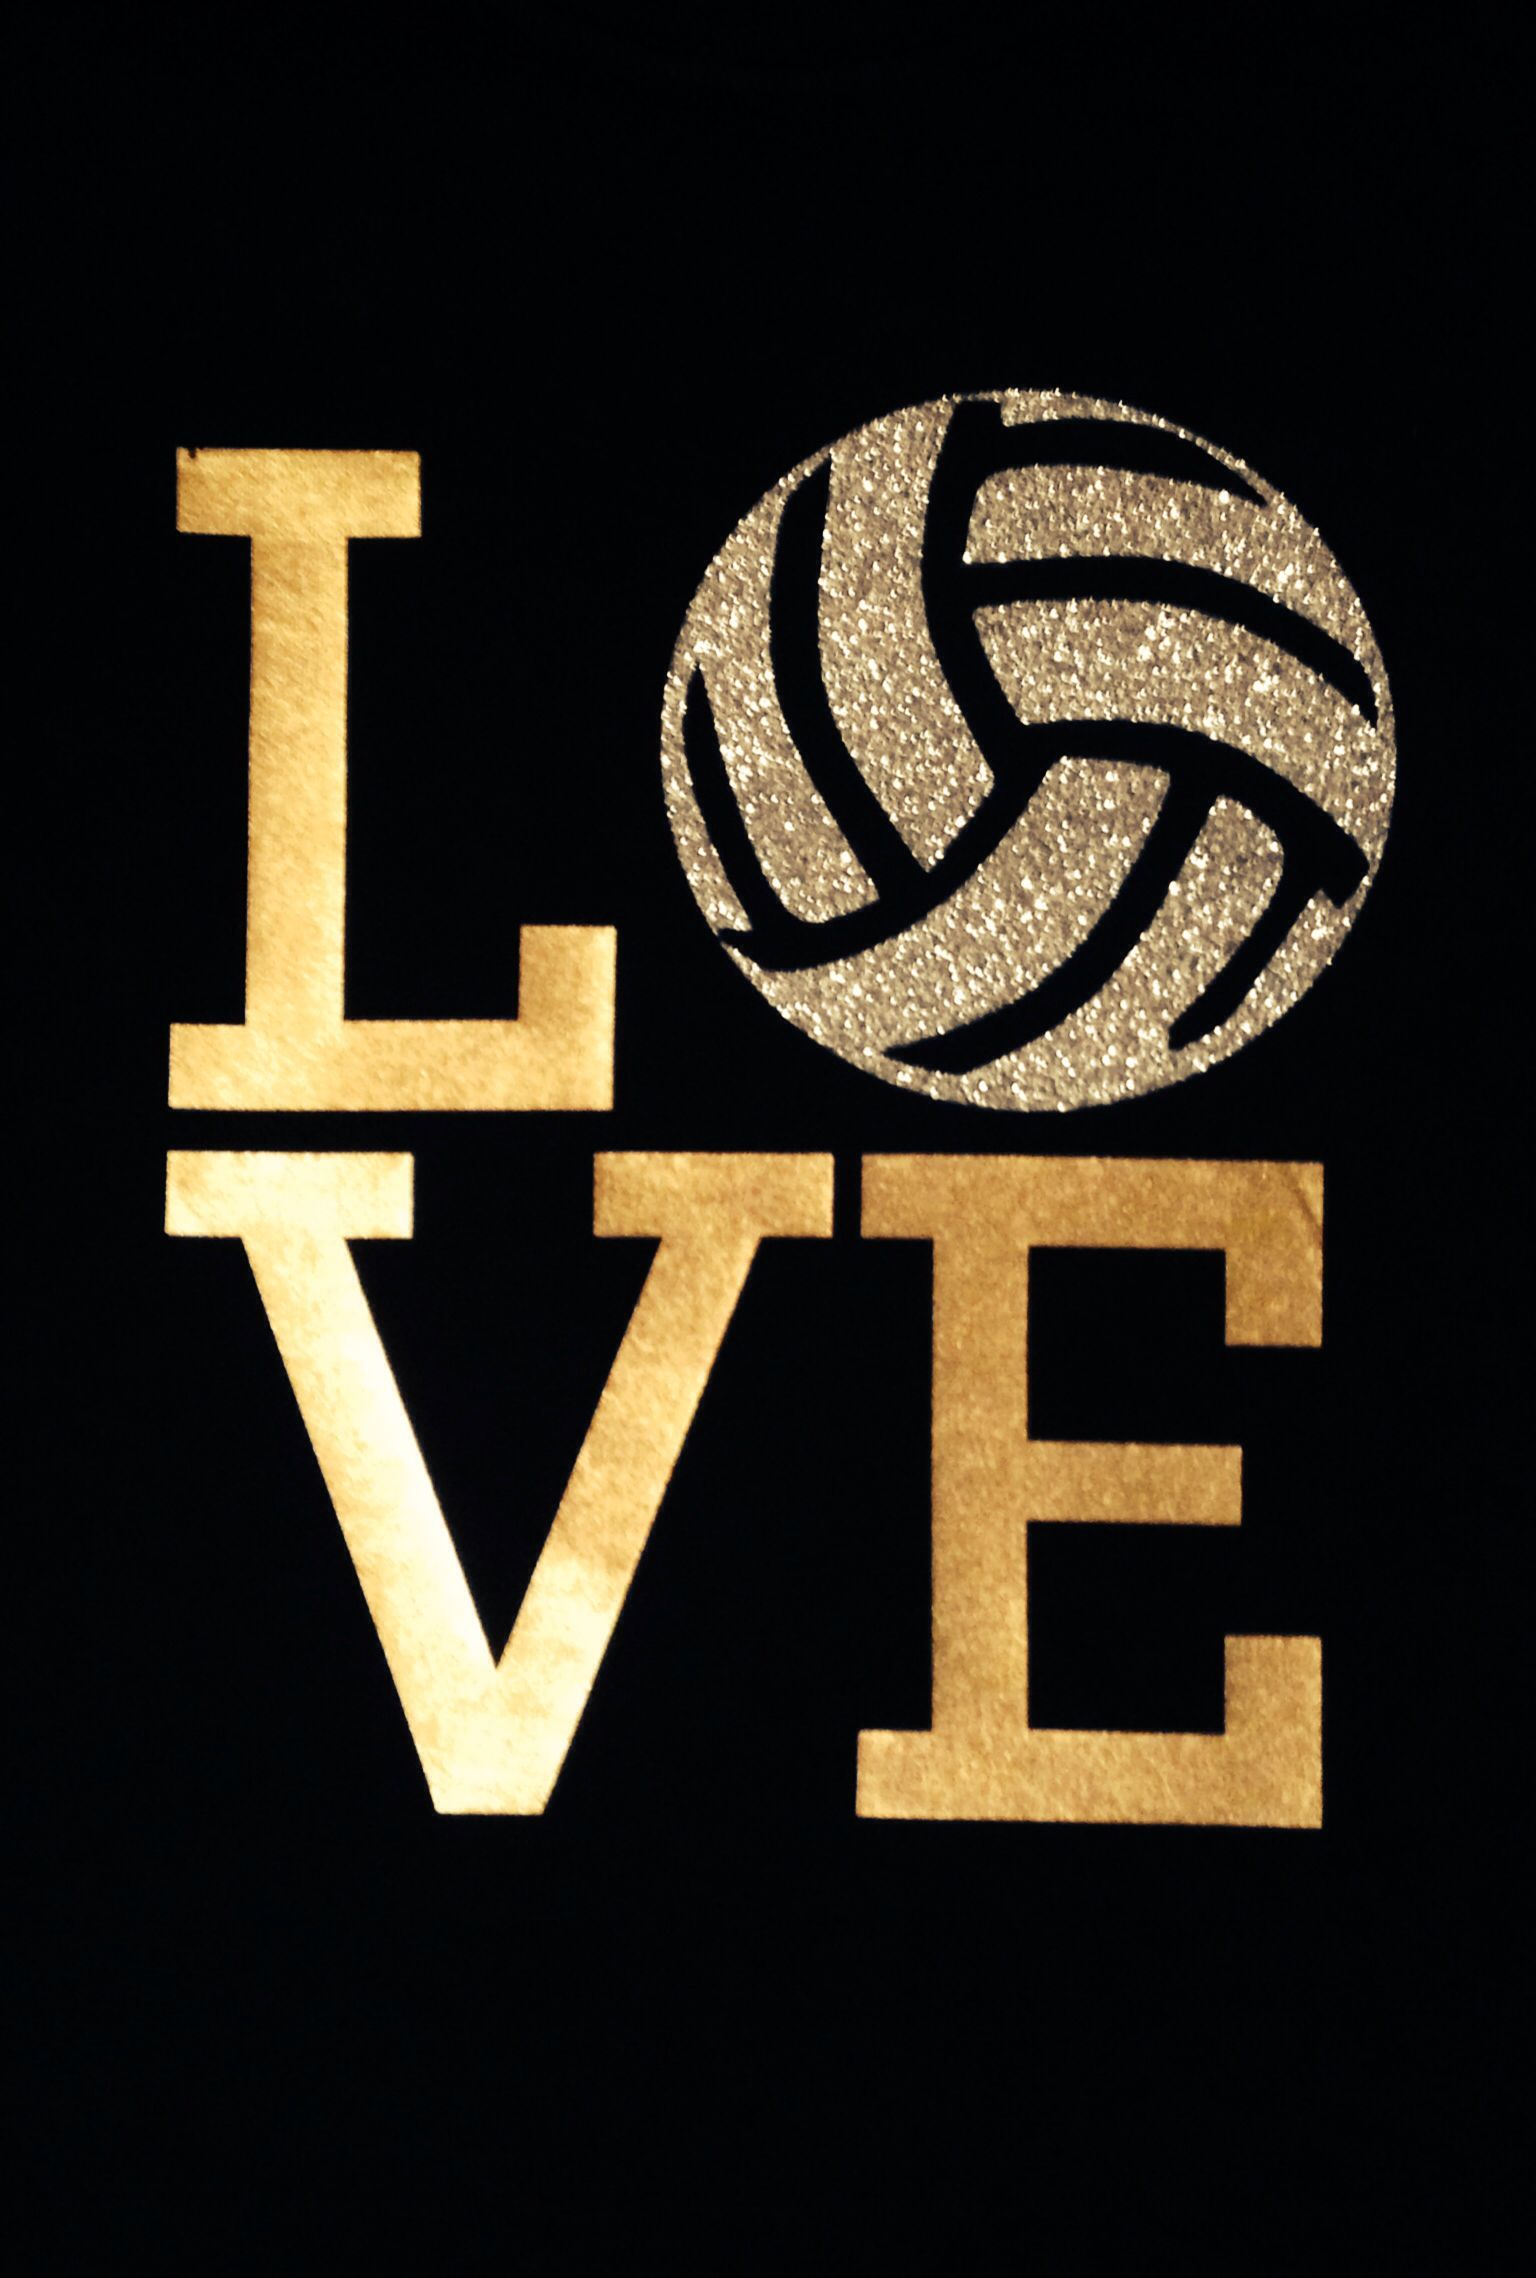 Volleyball Bling Volleyball Wallpaper Volleyball Quotes Volleyball Backgrounds